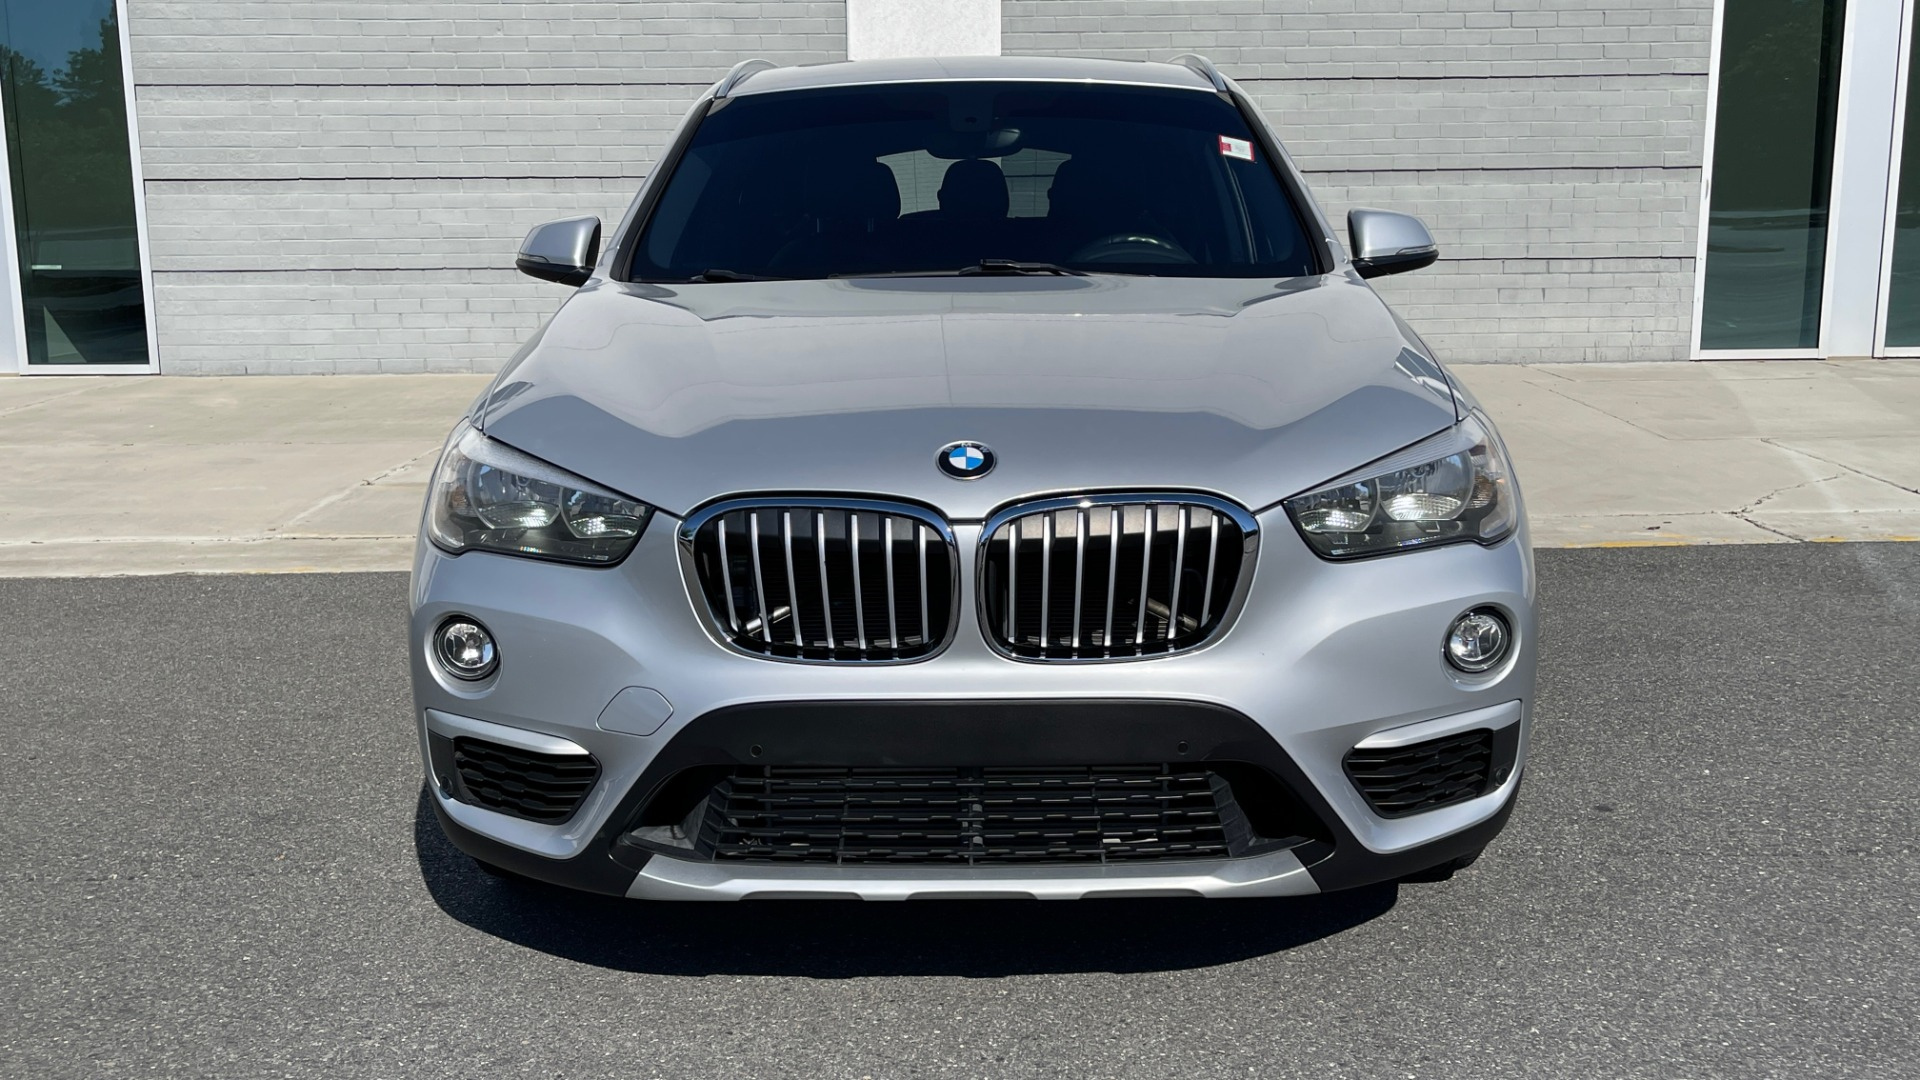 Used 2017 BMW X1 SDRIVE28I 2.0L / 8-SPD AUTO / DRIVER ASST / PANO-ROOF / REARVIEW for sale $26,995 at Formula Imports in Charlotte NC 28227 7